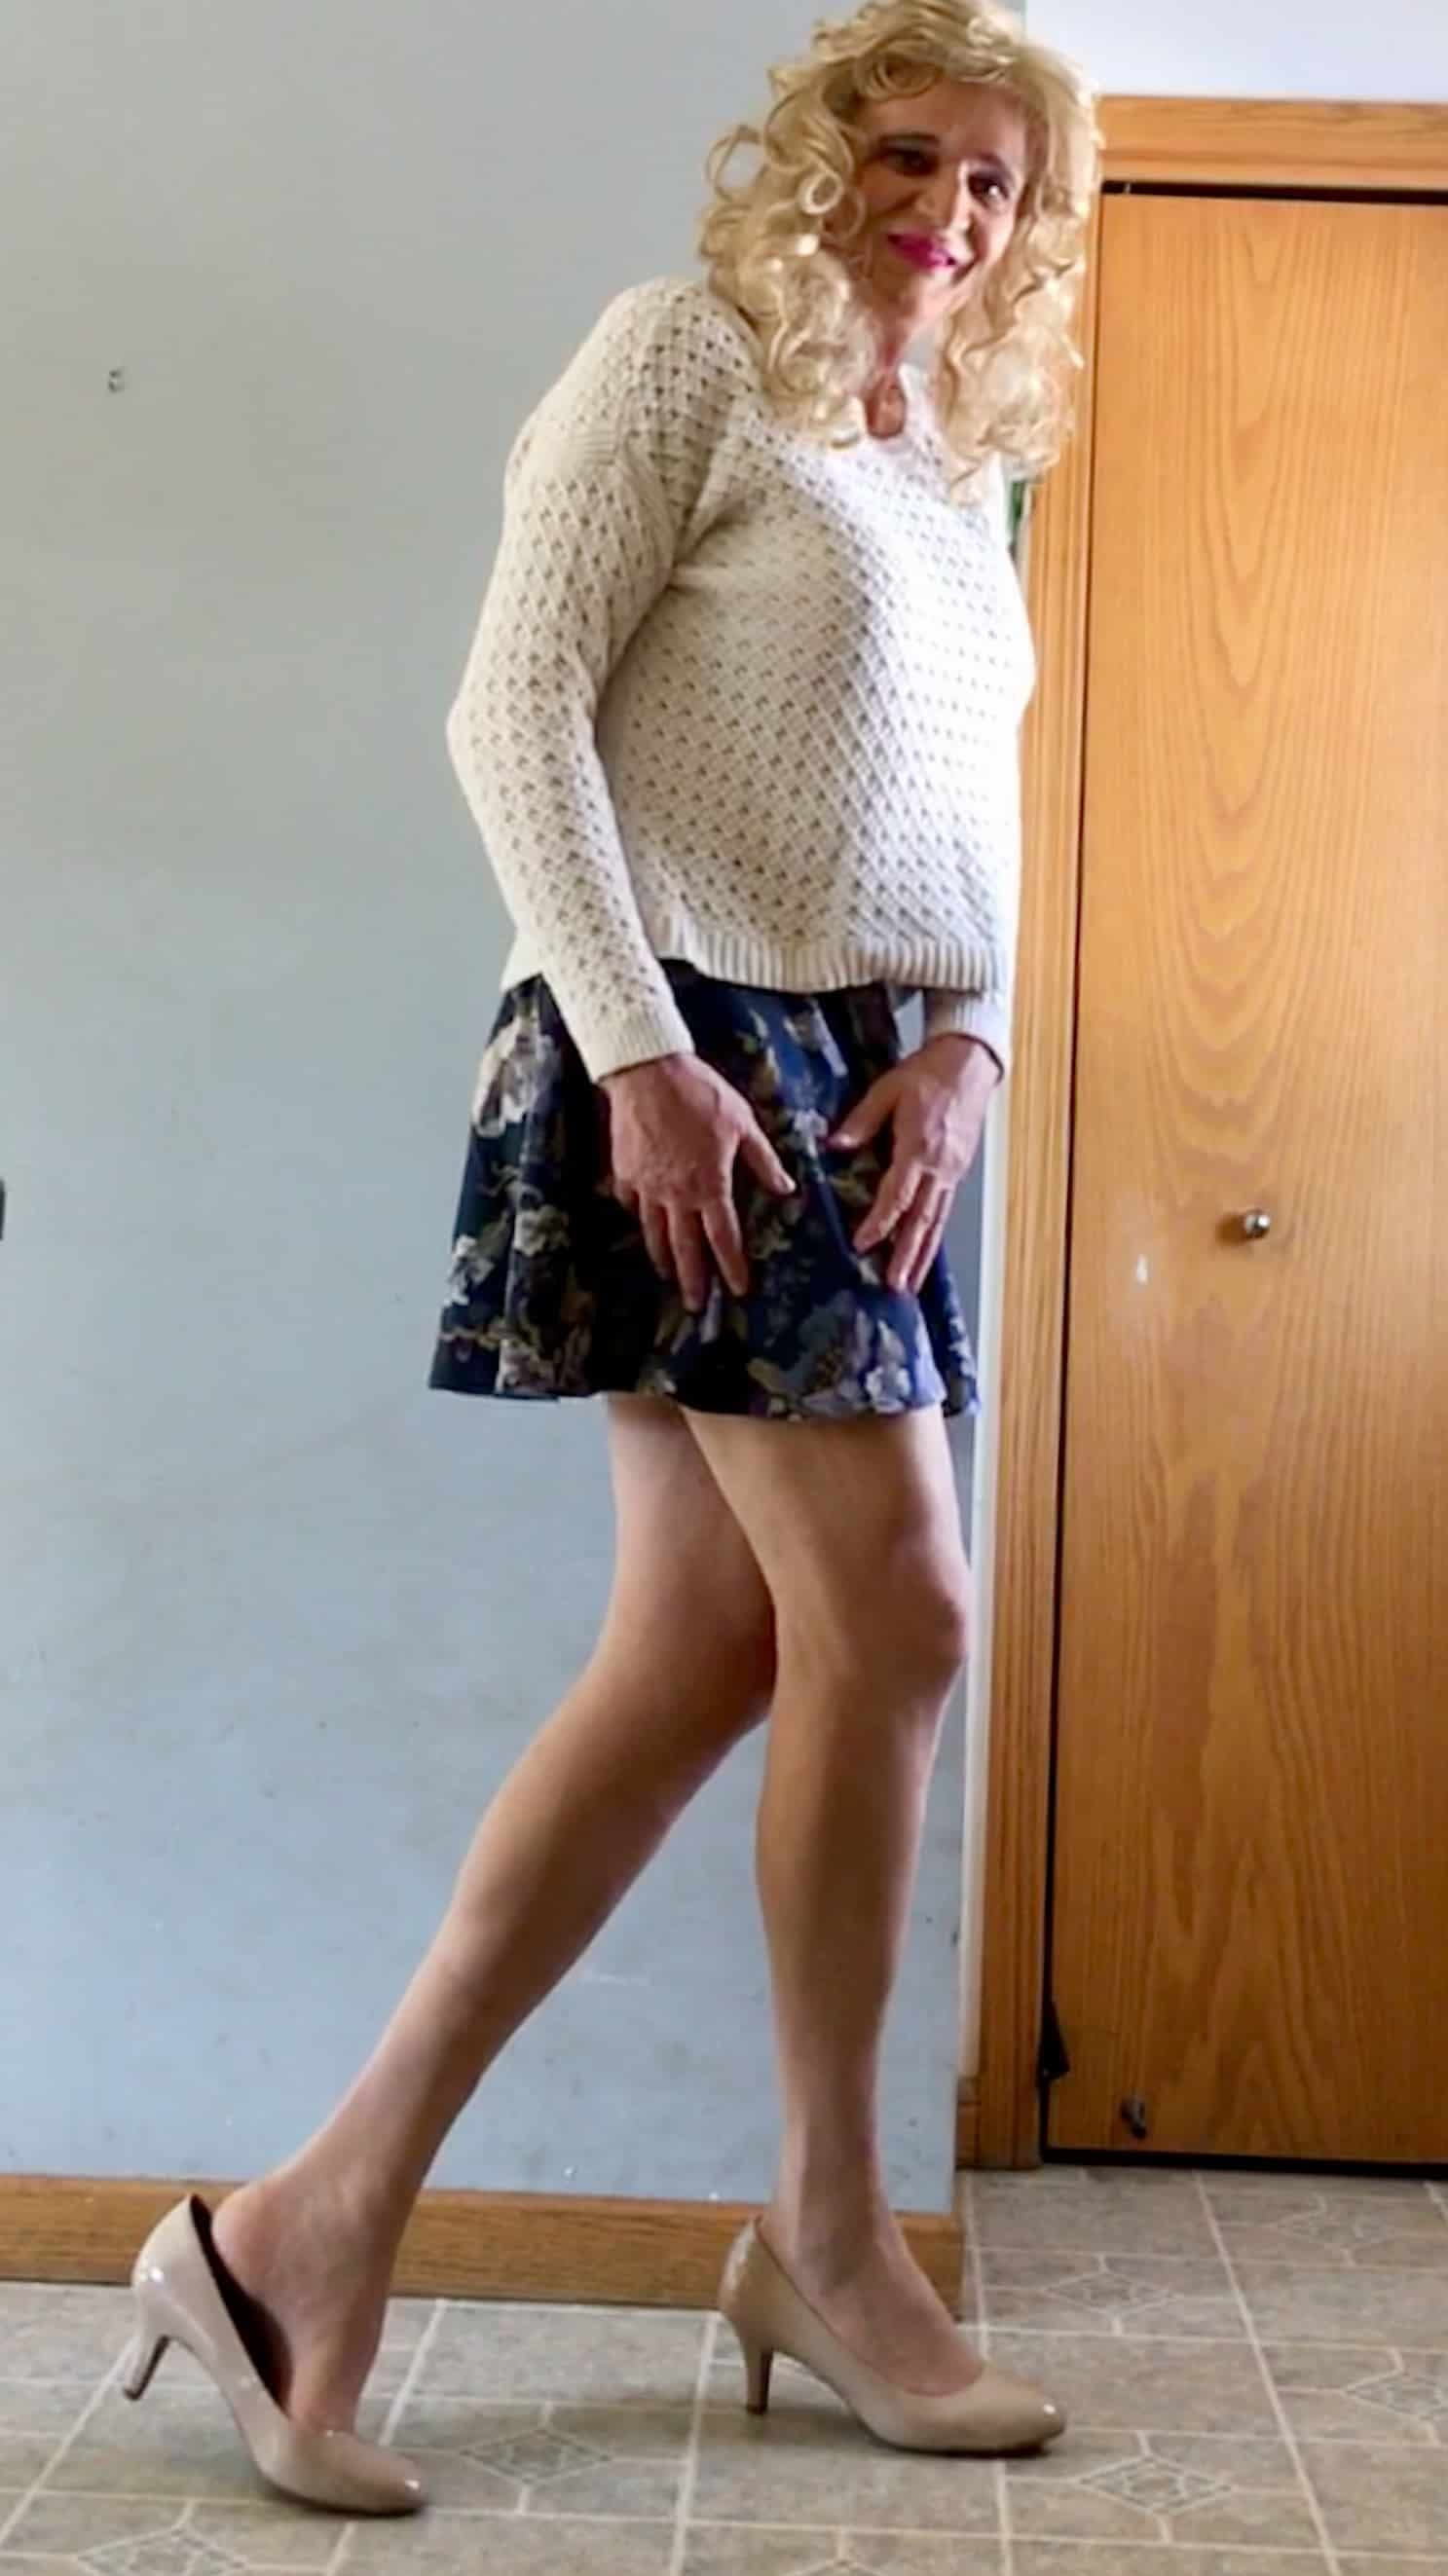 Skirt with heels and pantyhose